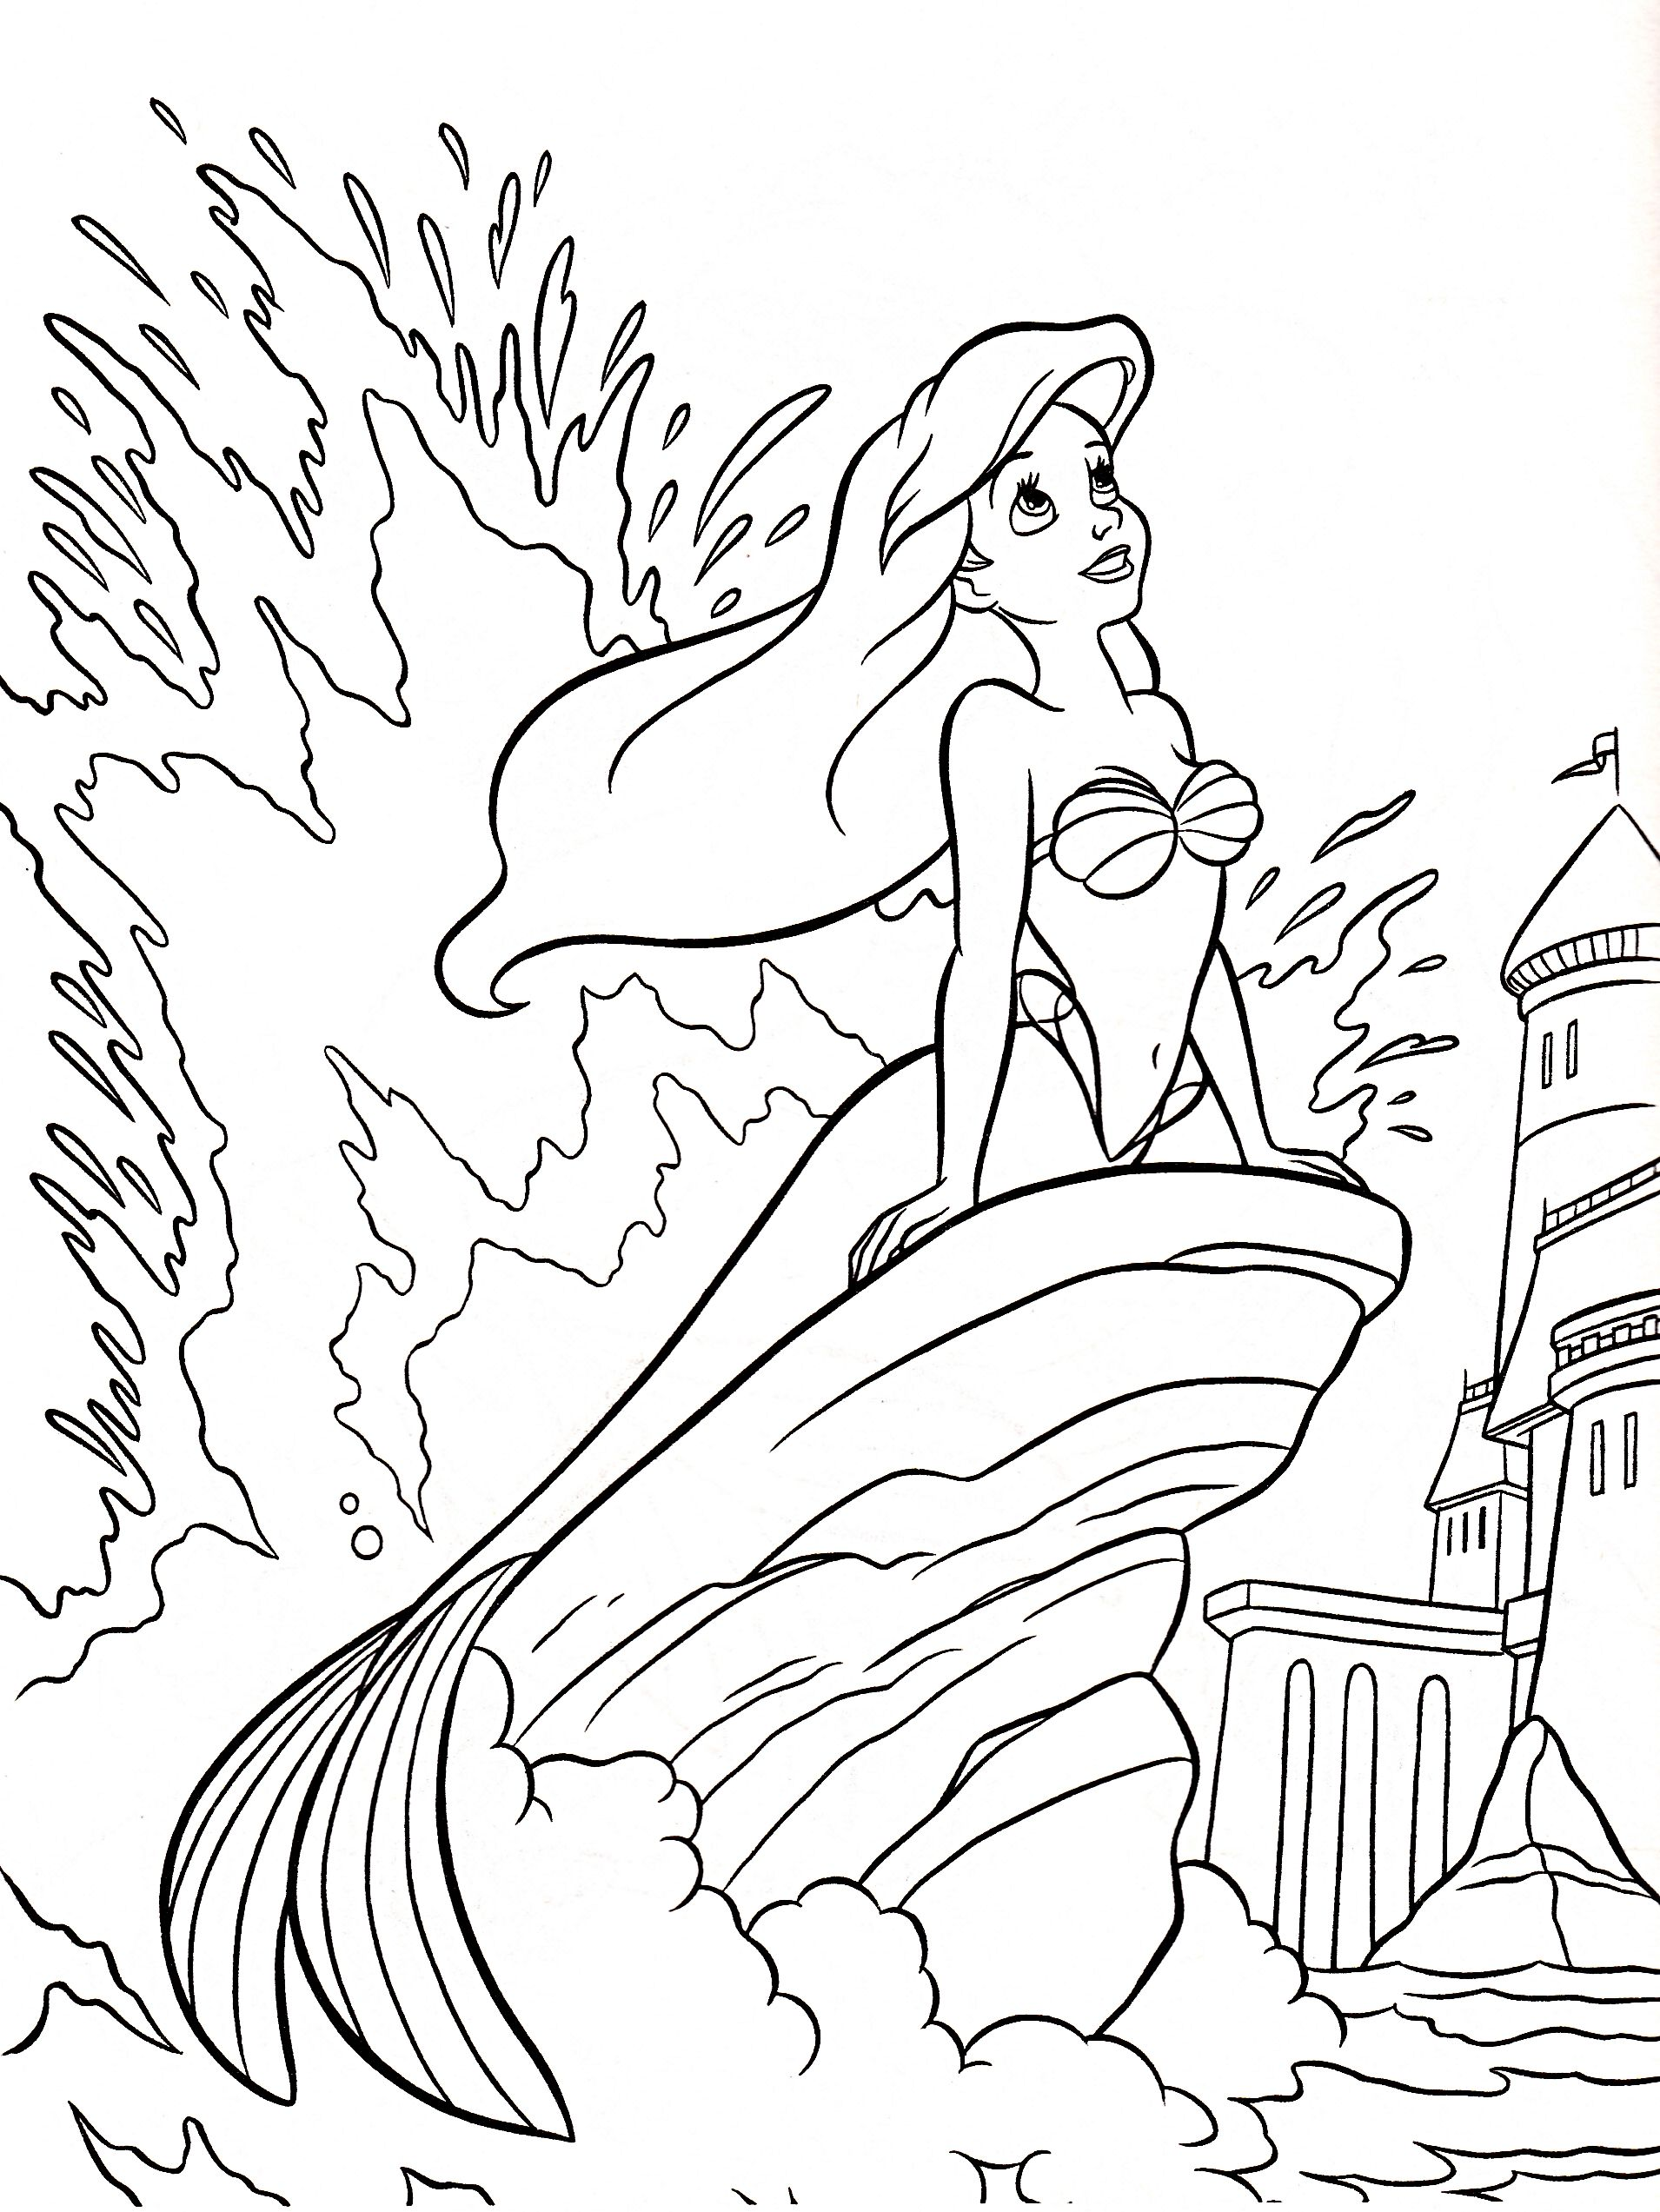 Coloring Pages Walt Disney Coloring Pages Princess Ariel Walt Disney Characte Ariel Coloring Pages Disney Princess Coloring Pages Princess Coloring Pages